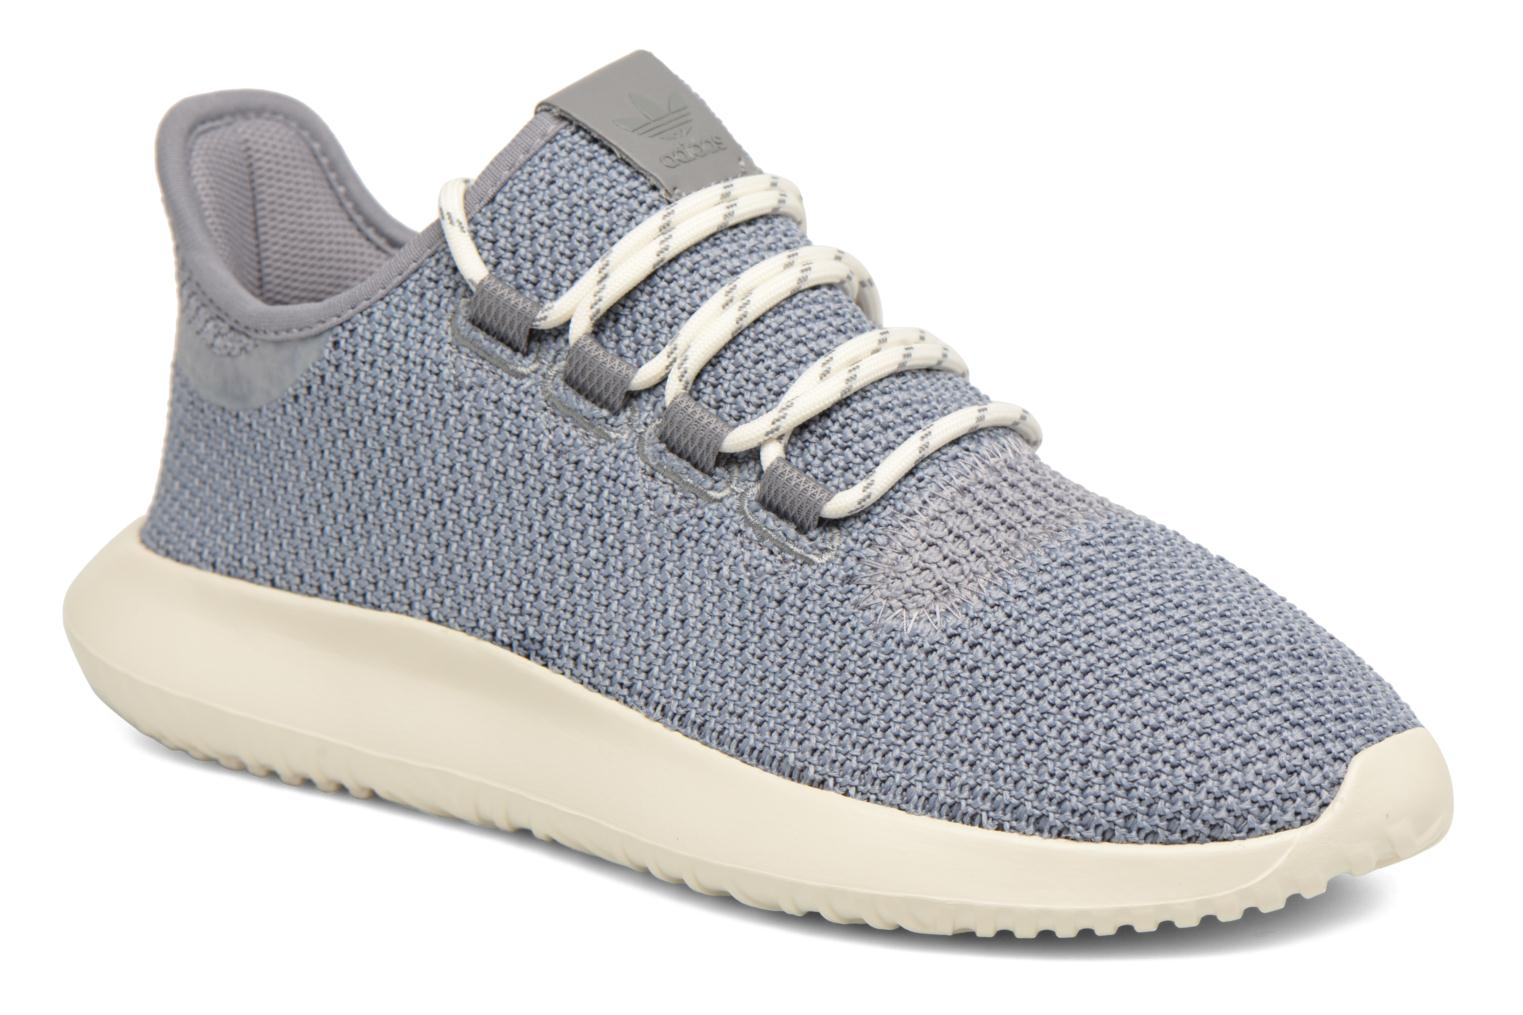 Gritro/Gritro/Blacra Adidas Originals Tubular Shadow J (Gris)